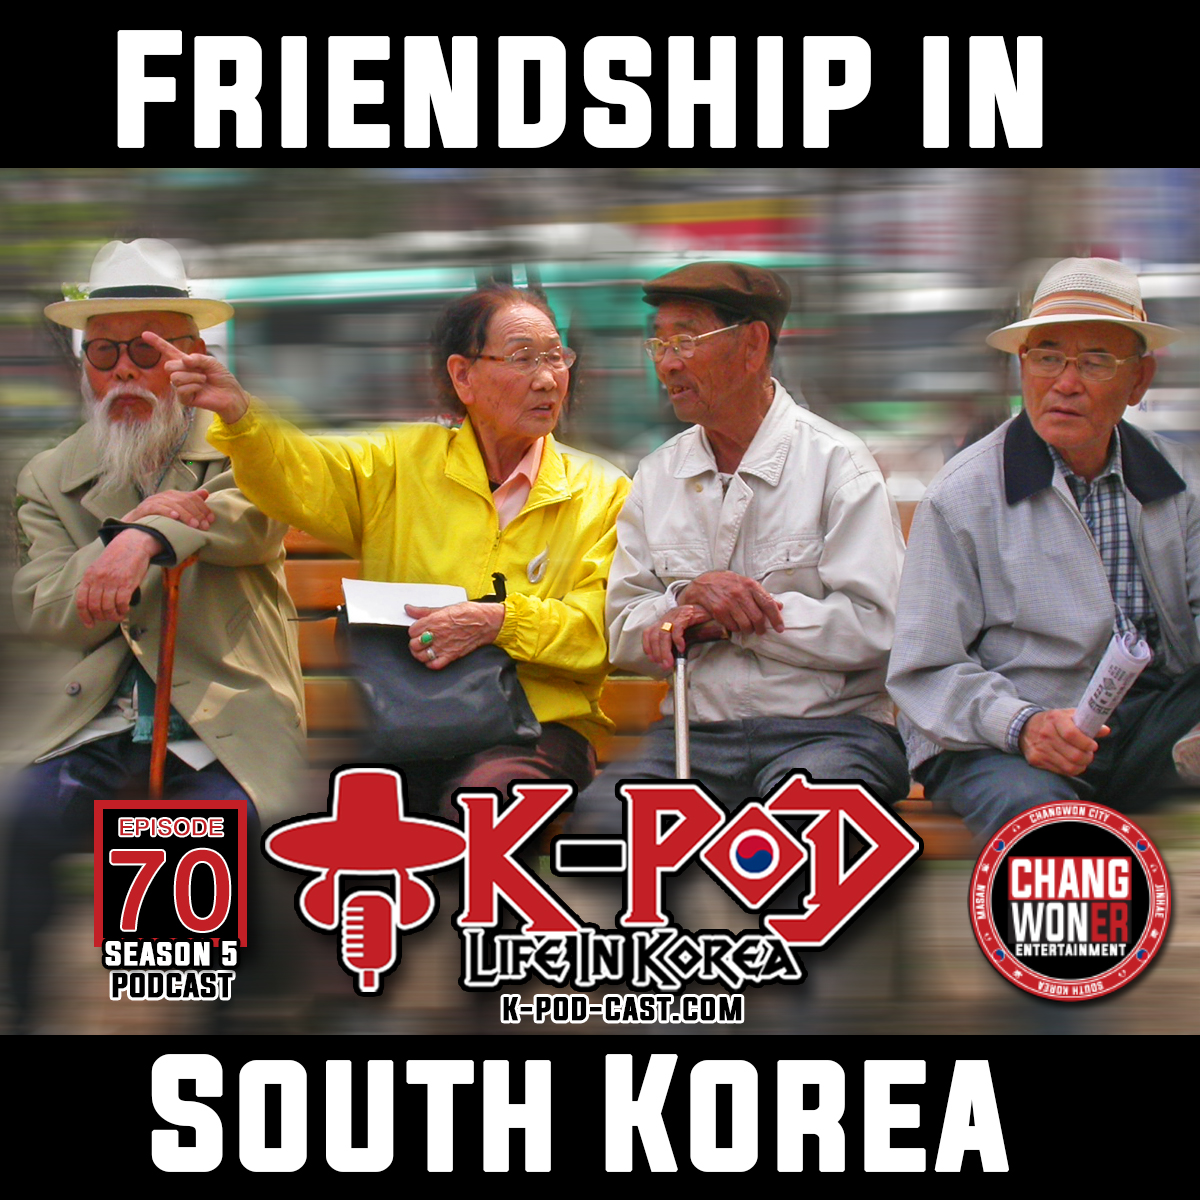 Friendship In South Korea (Episode 70) show art